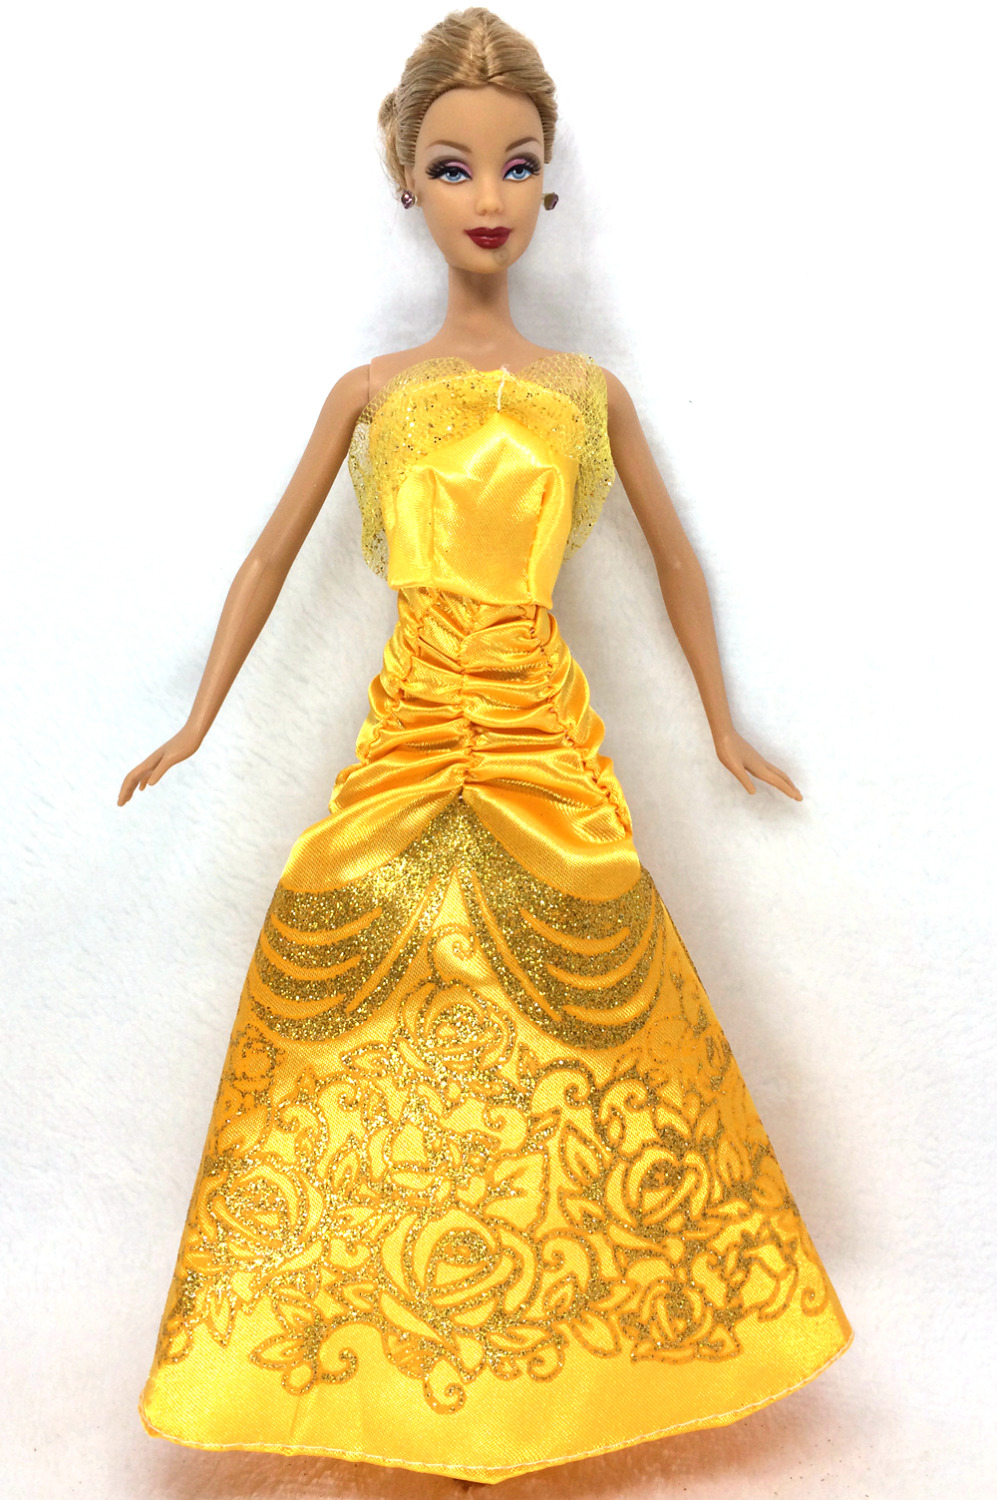 NK One Set Doll Costume Related Fairy Story Princess Belle Doll Wedding ceremony Costume  Robe Celebration Outfit For Barbie Doll Finest Ladies' Reward